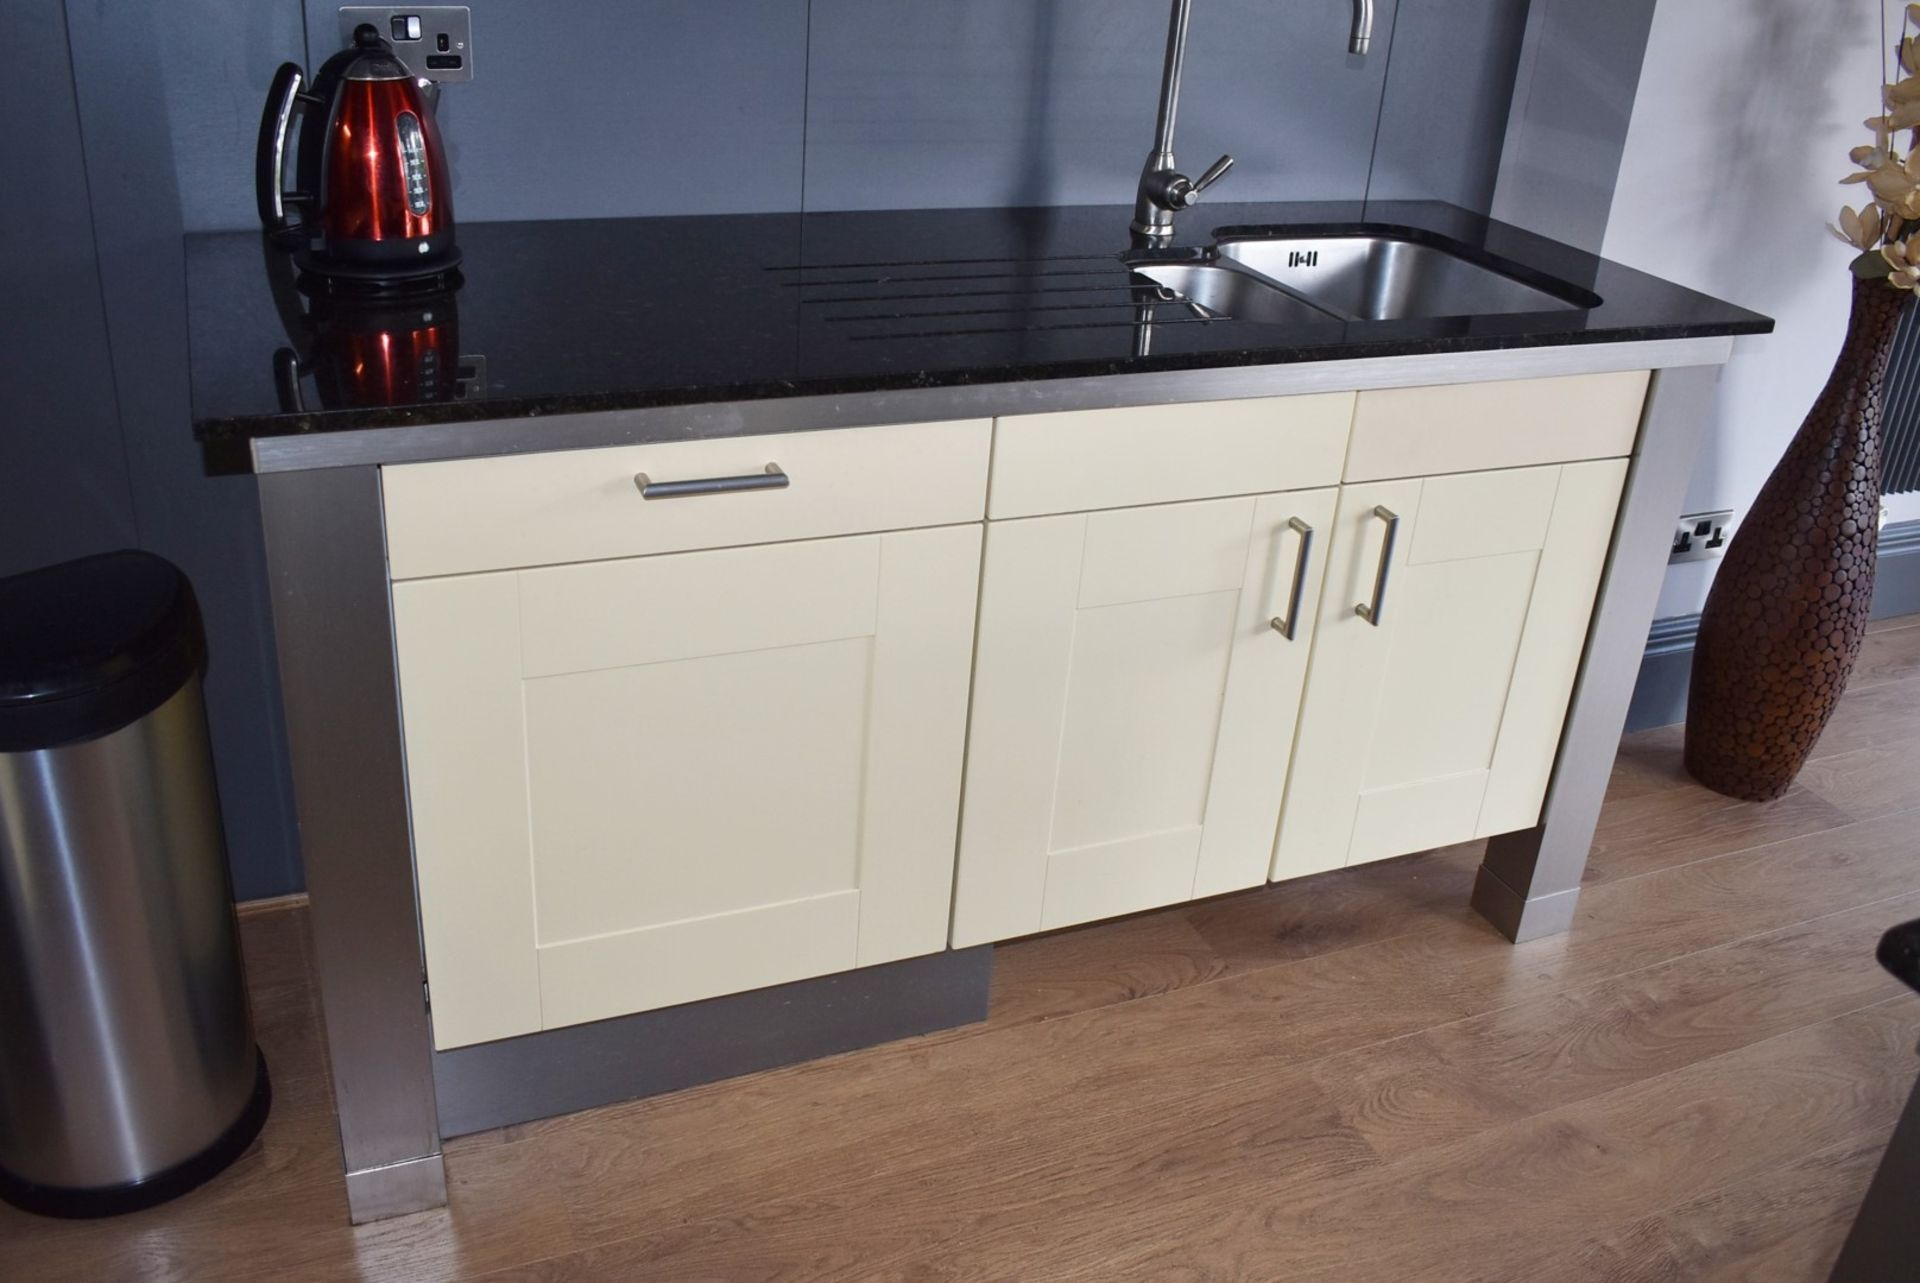 1 x SieMatic Contemporary Fitted Kitchen With Appliances - Features Shaker Style Doors, Central - Image 40 of 96